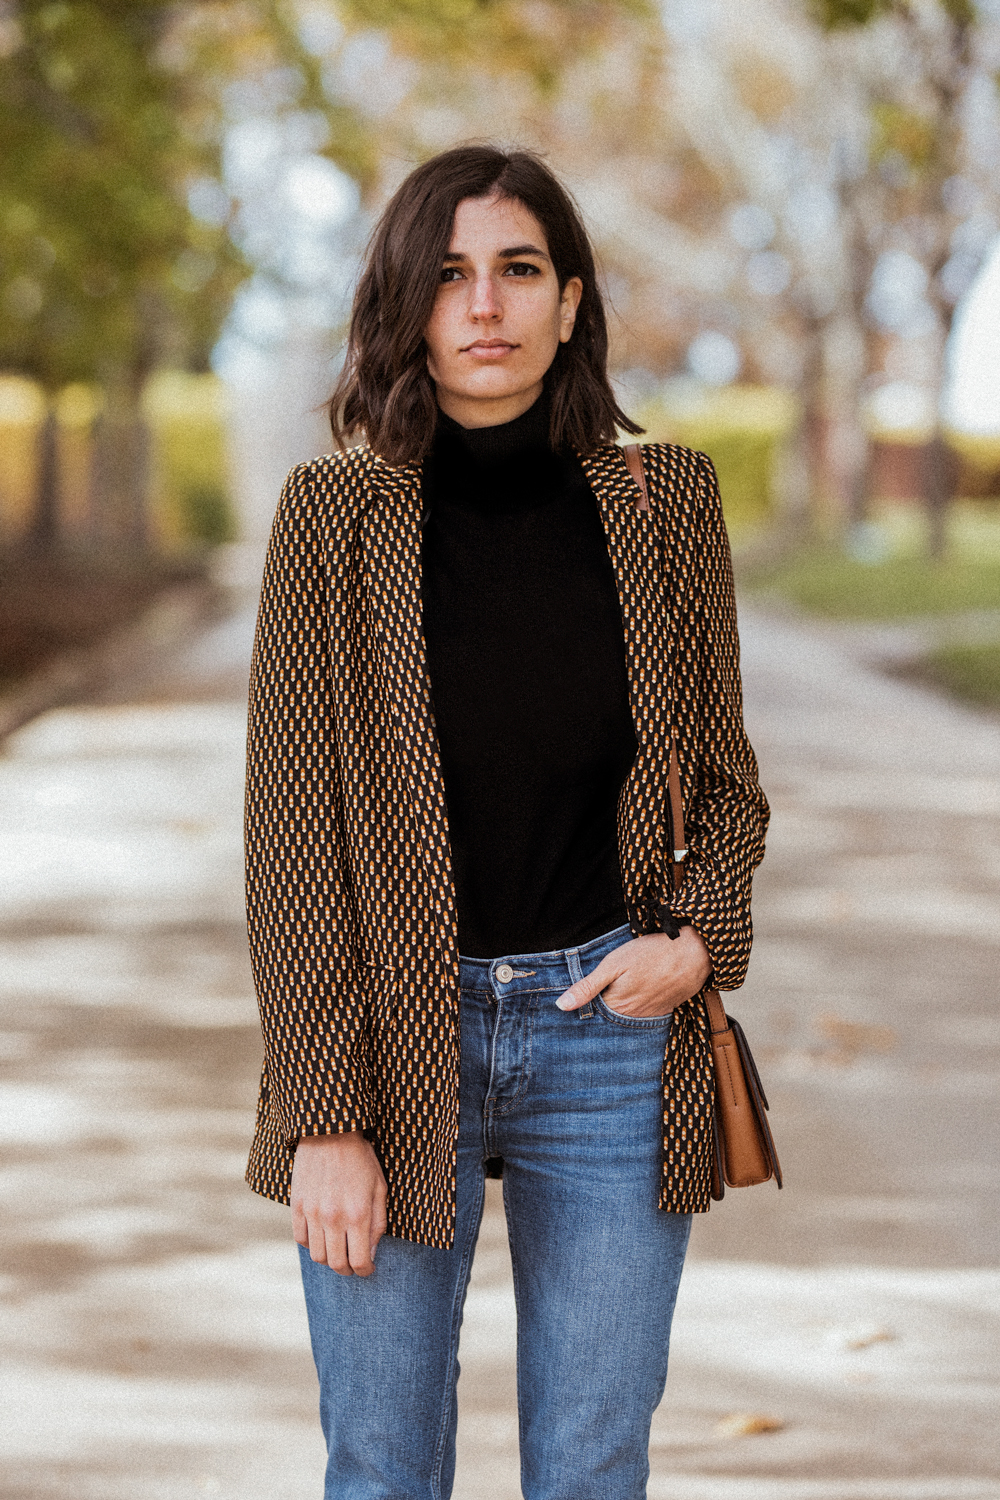 A simple yet stylish Fall outfit